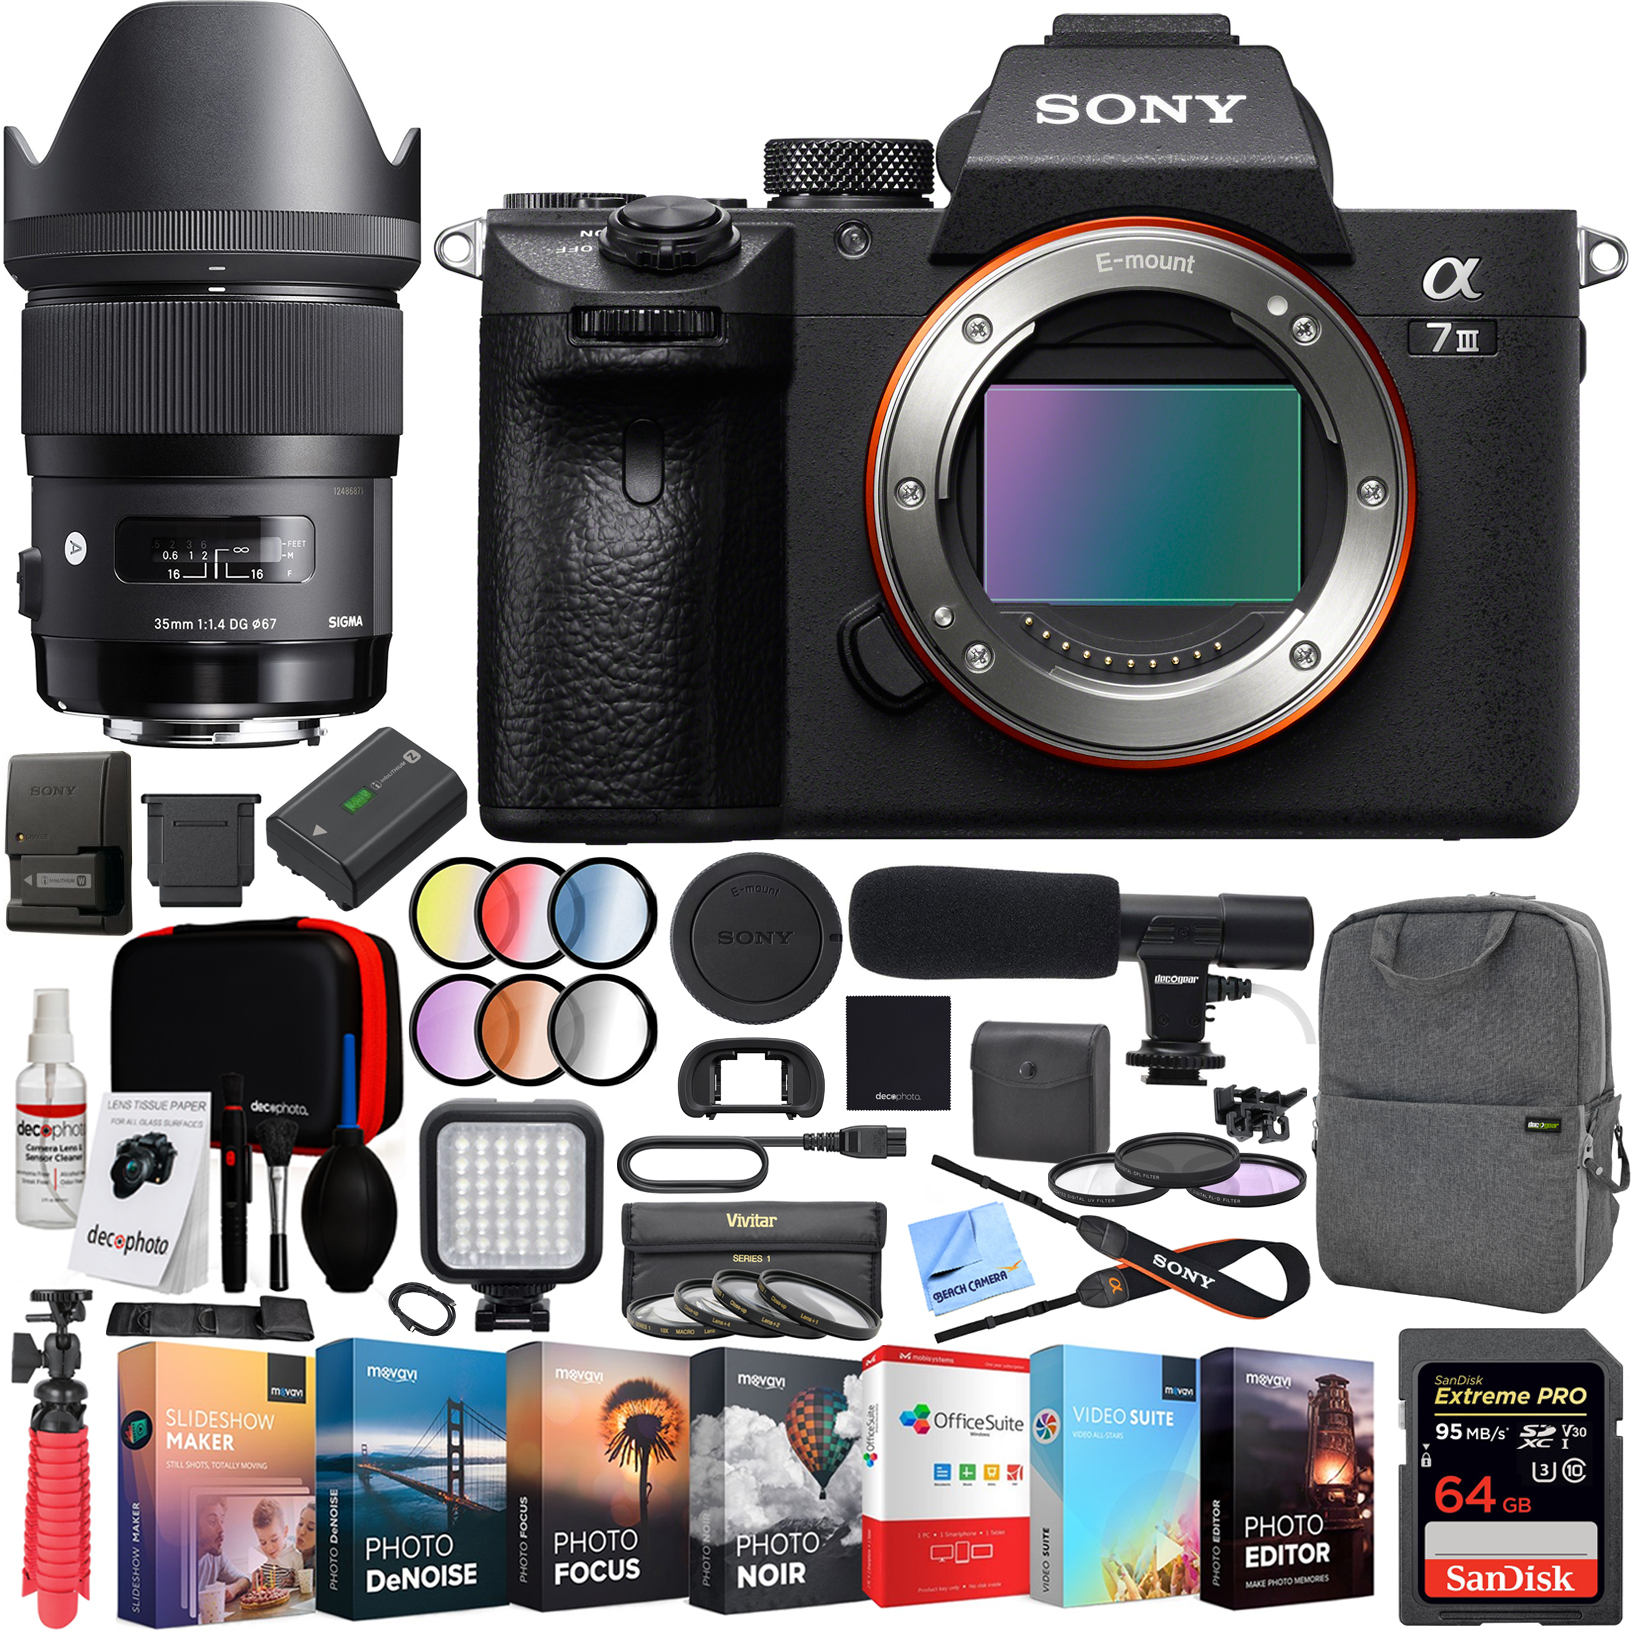 Sony a7 III Full Frame Mirrorless Interchangeable Lens 4K HDR Camera ILCE-7M3 Body with Sigma 35mm F1.4 ART DG HSM E-mount Lens and Deco Gear Backpack Kit Microphone Editing Bundle